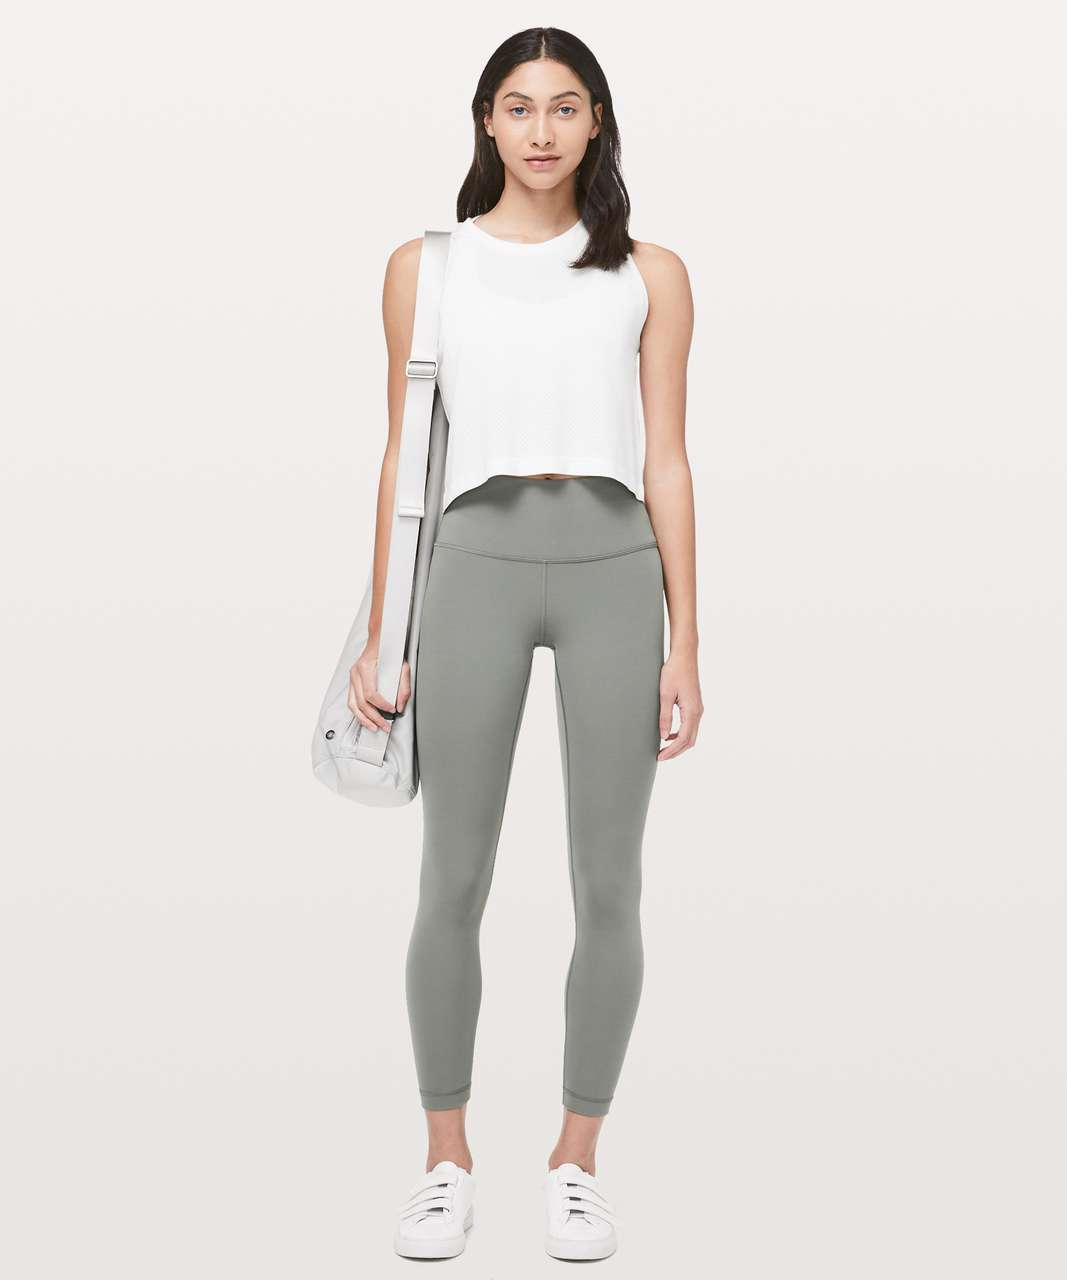 "Lululemon Wunder Under High-Rise 7/8 Tight *Full-On Luxtreme 25"" - Grey Sage"